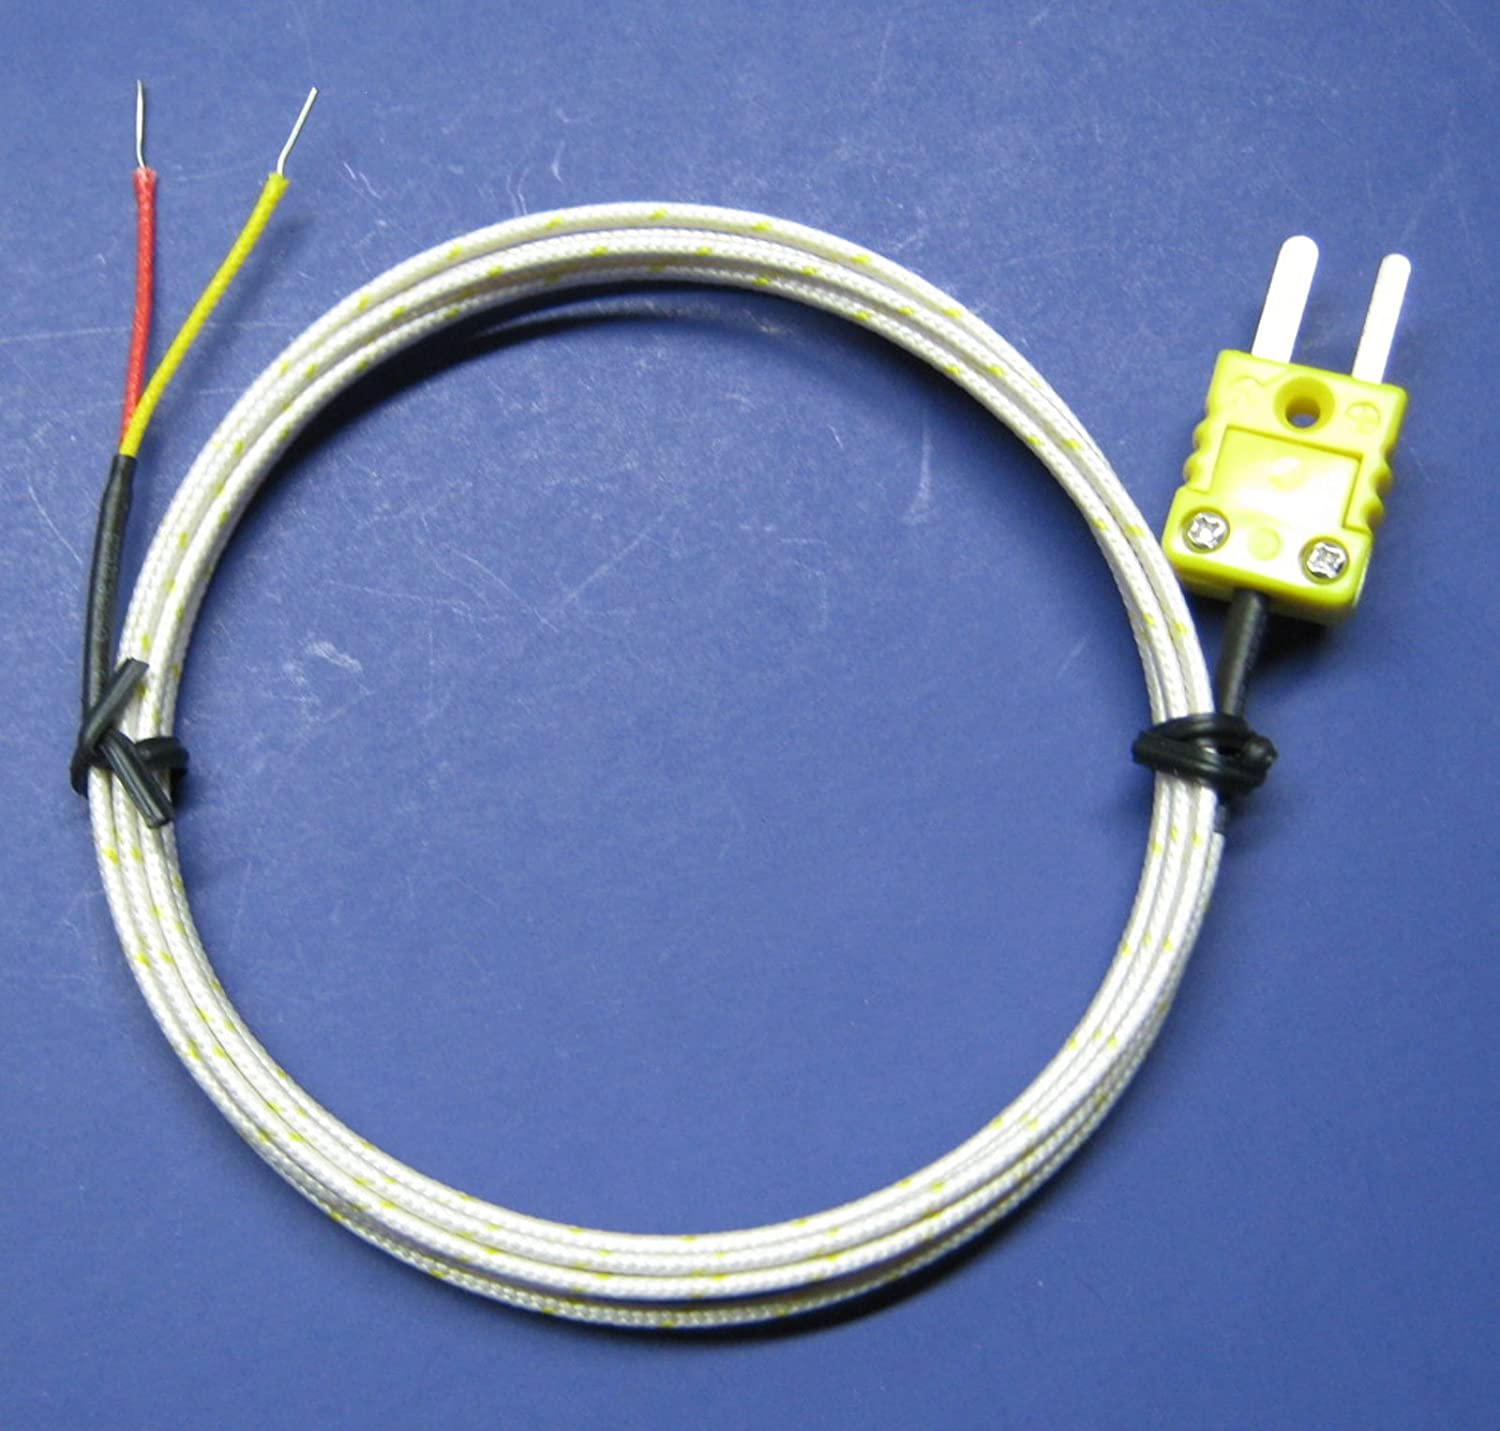 K-type Hookup Connector Cable for High Temperature Kiln and Furnace K-Type Thermocouples